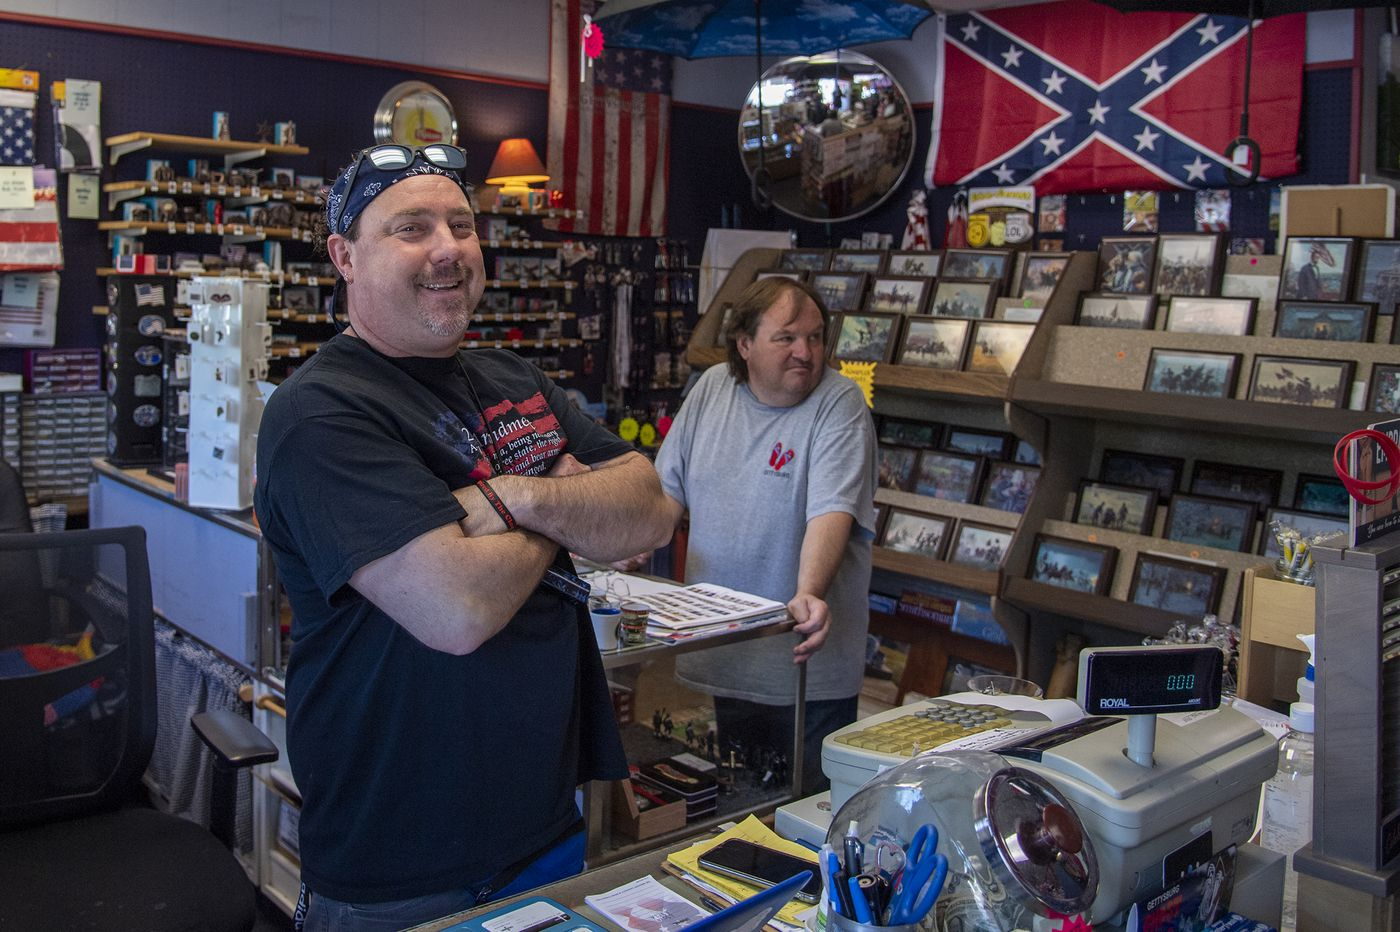 Gettysburg, home to America's most hallowed battlefield, reckons with symbols of the Confederacy